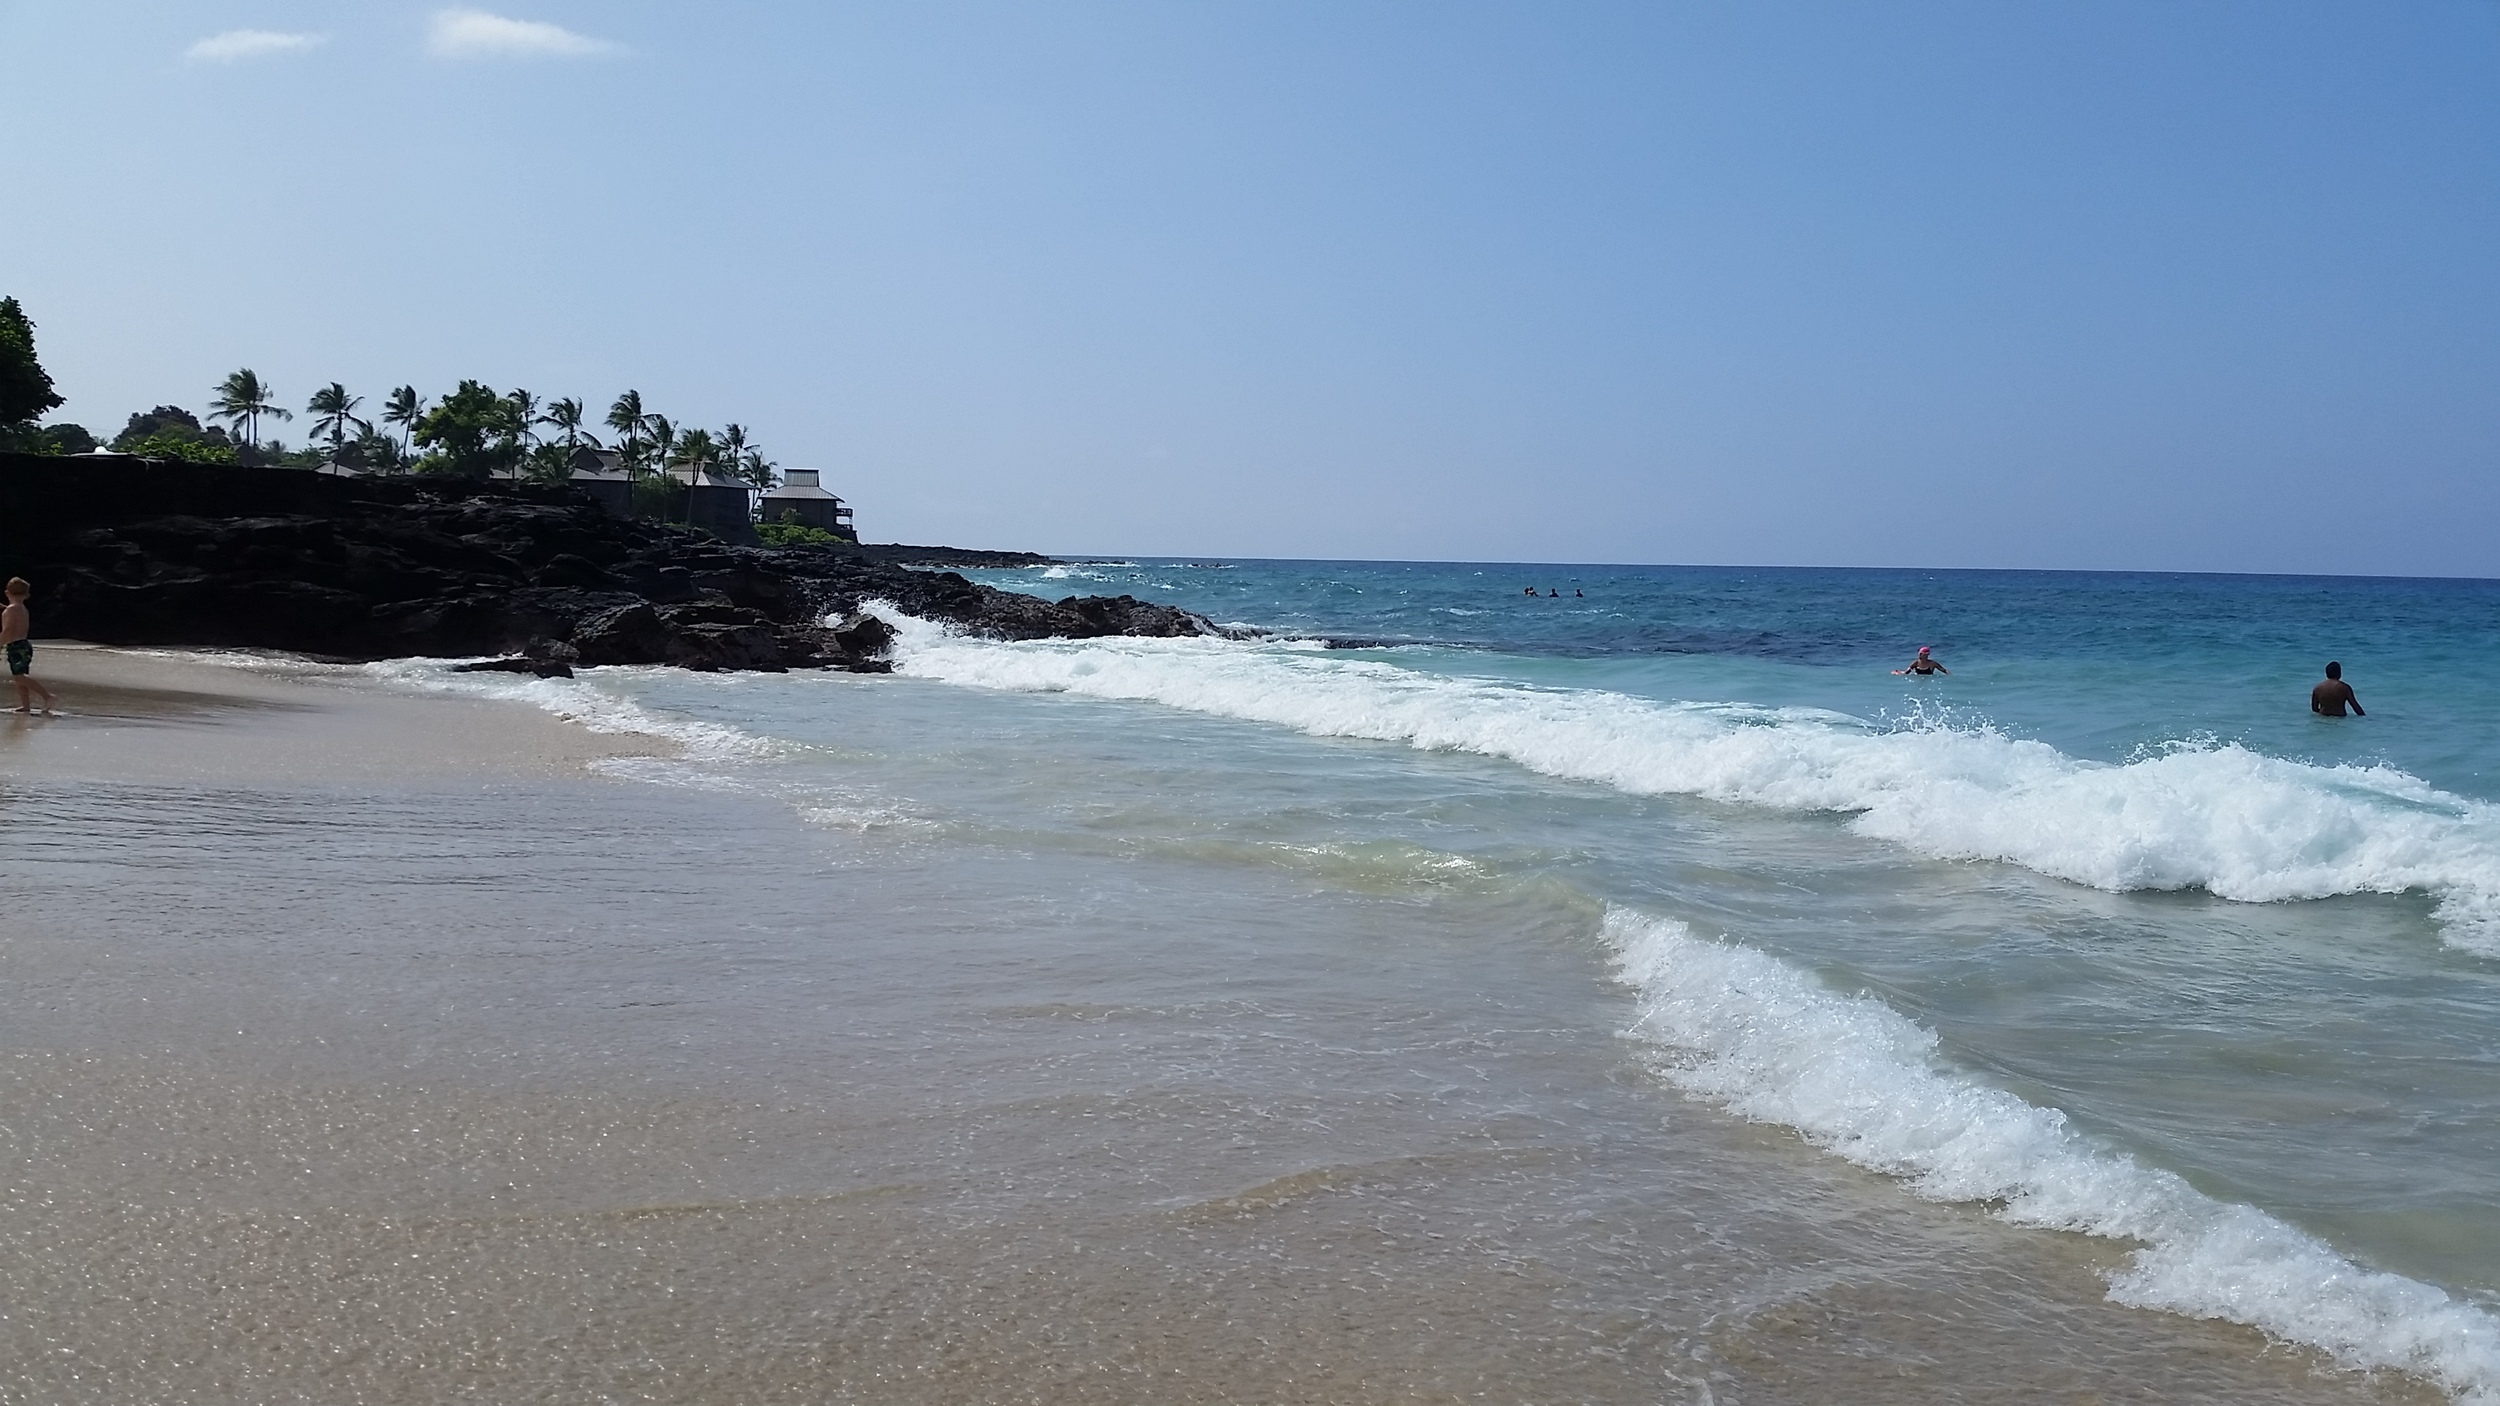 A shot of White Sands Beach. One of the few beaches situated on Ali'i Drive.